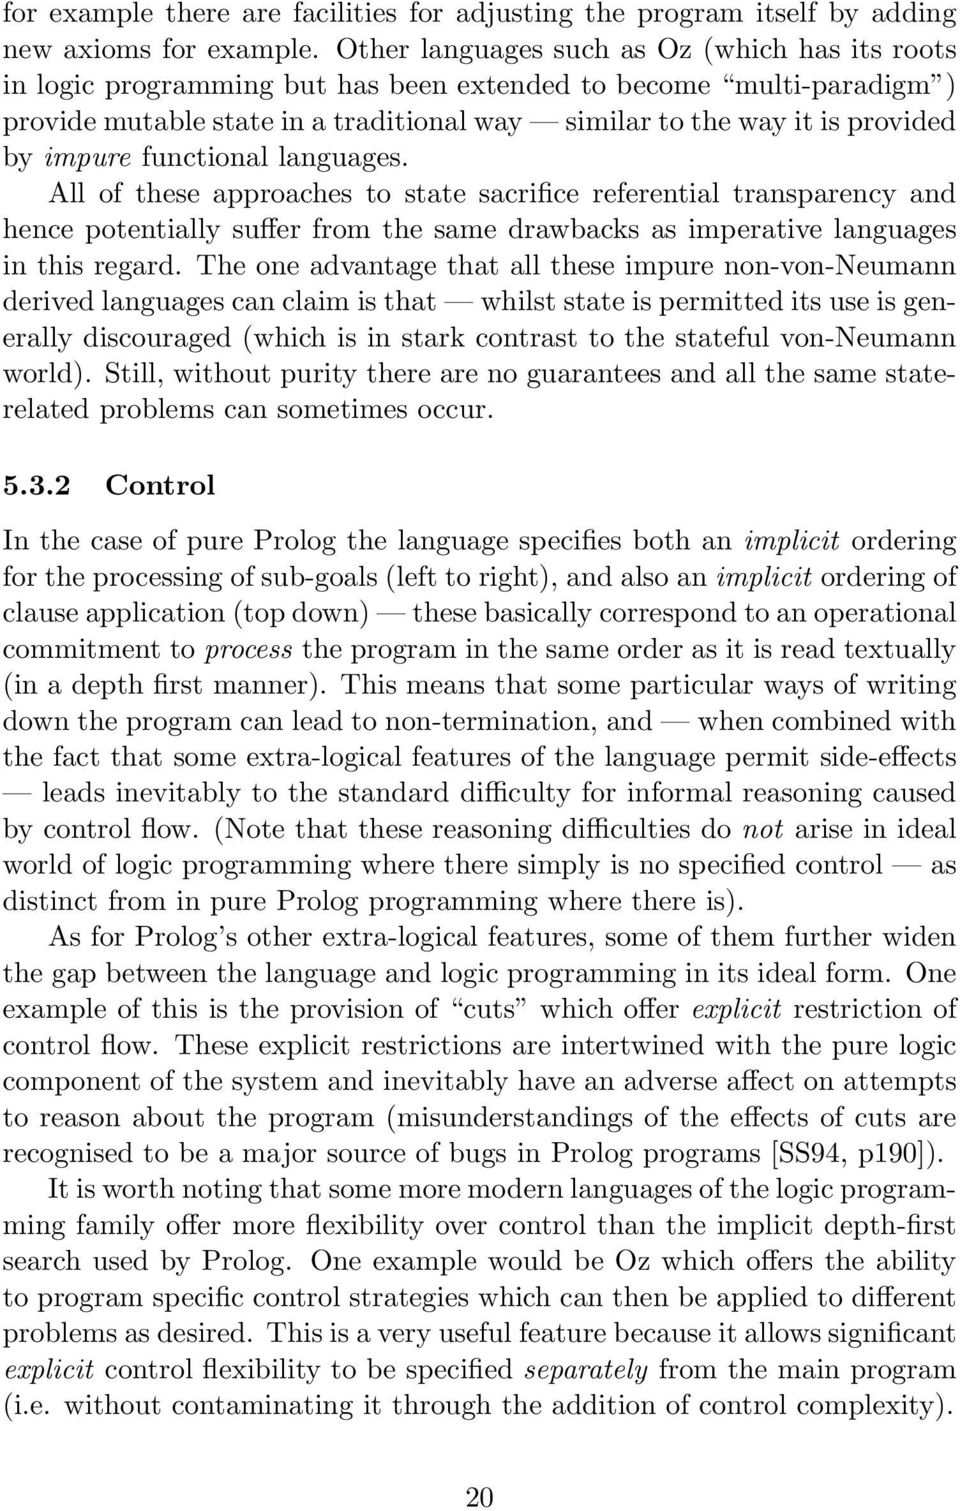 impure functional languages. All of these approaches to state sacrifice referential transparency and hence potentially suffer from the same drawbacks as imperative languages in this regard.